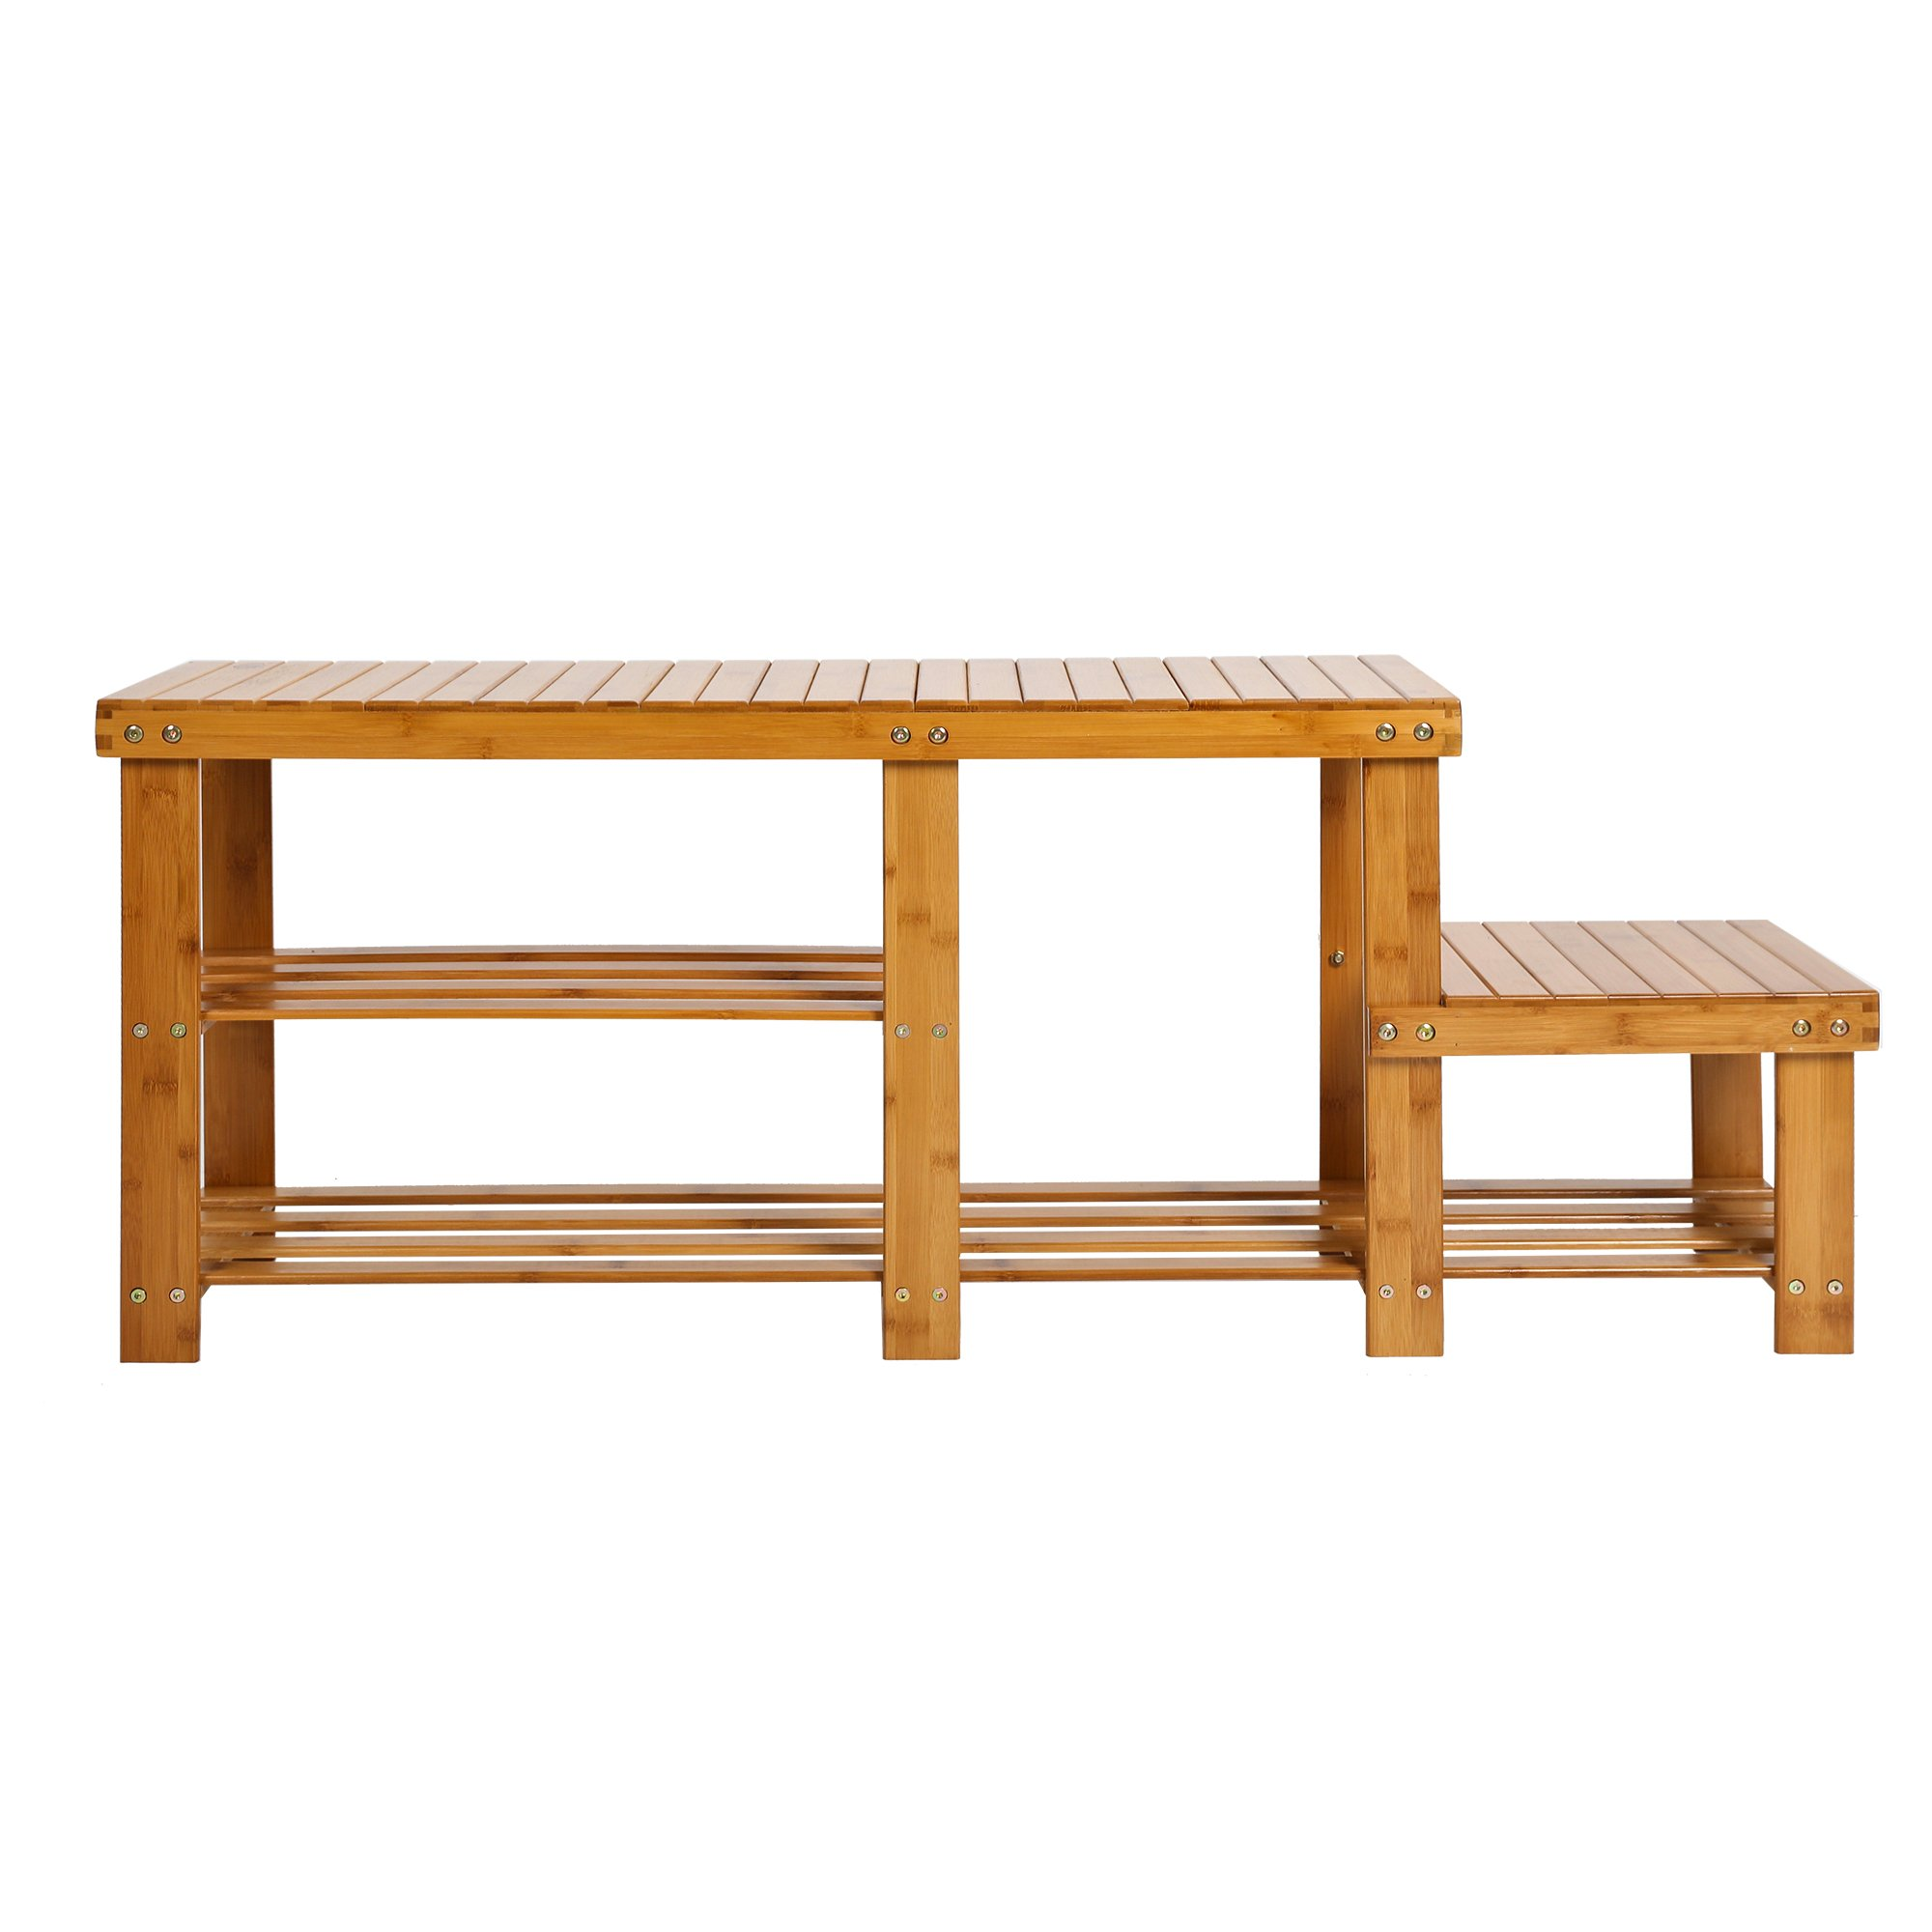 Lucky tree 2-tire Bamboo Shoe Bench for Entryway Boot Rack Storage Shelf with High and Low Levels for Adult and Kid